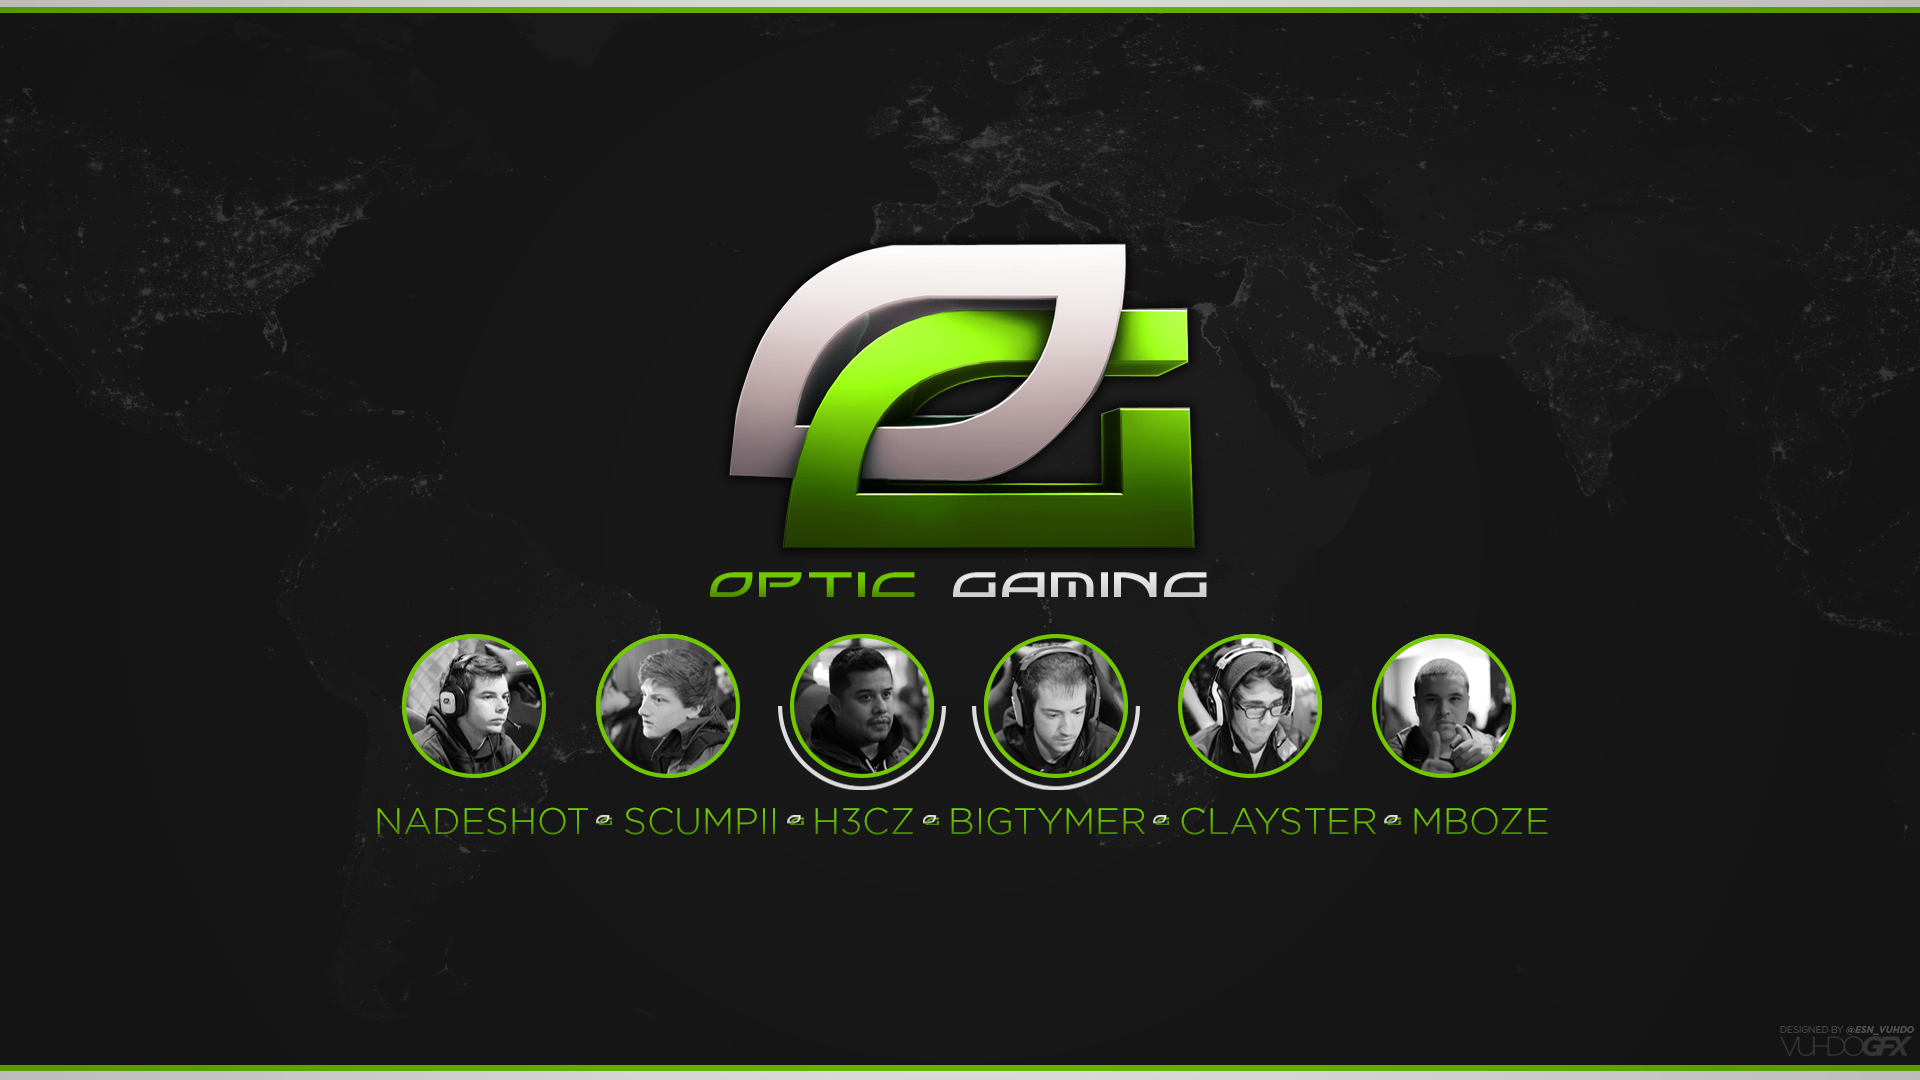 optic gaming desktop Quotes 1920x1080